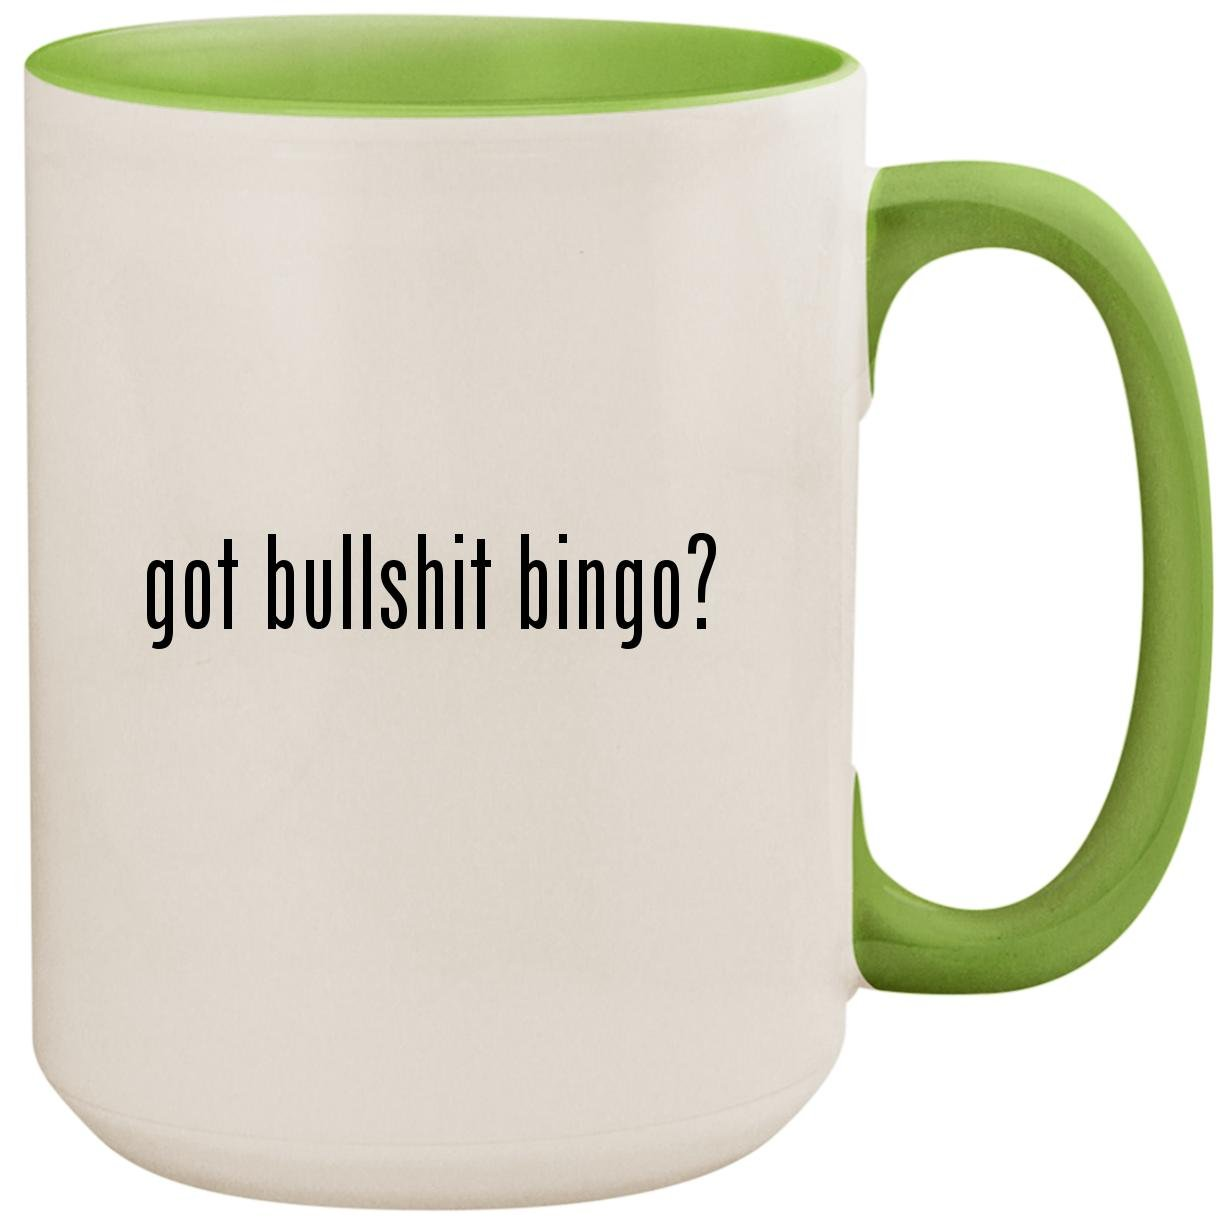 got bullshit bingo? - 15oz Ceramic Colored Inside and Handle Coffee Mug Cup, Light Green